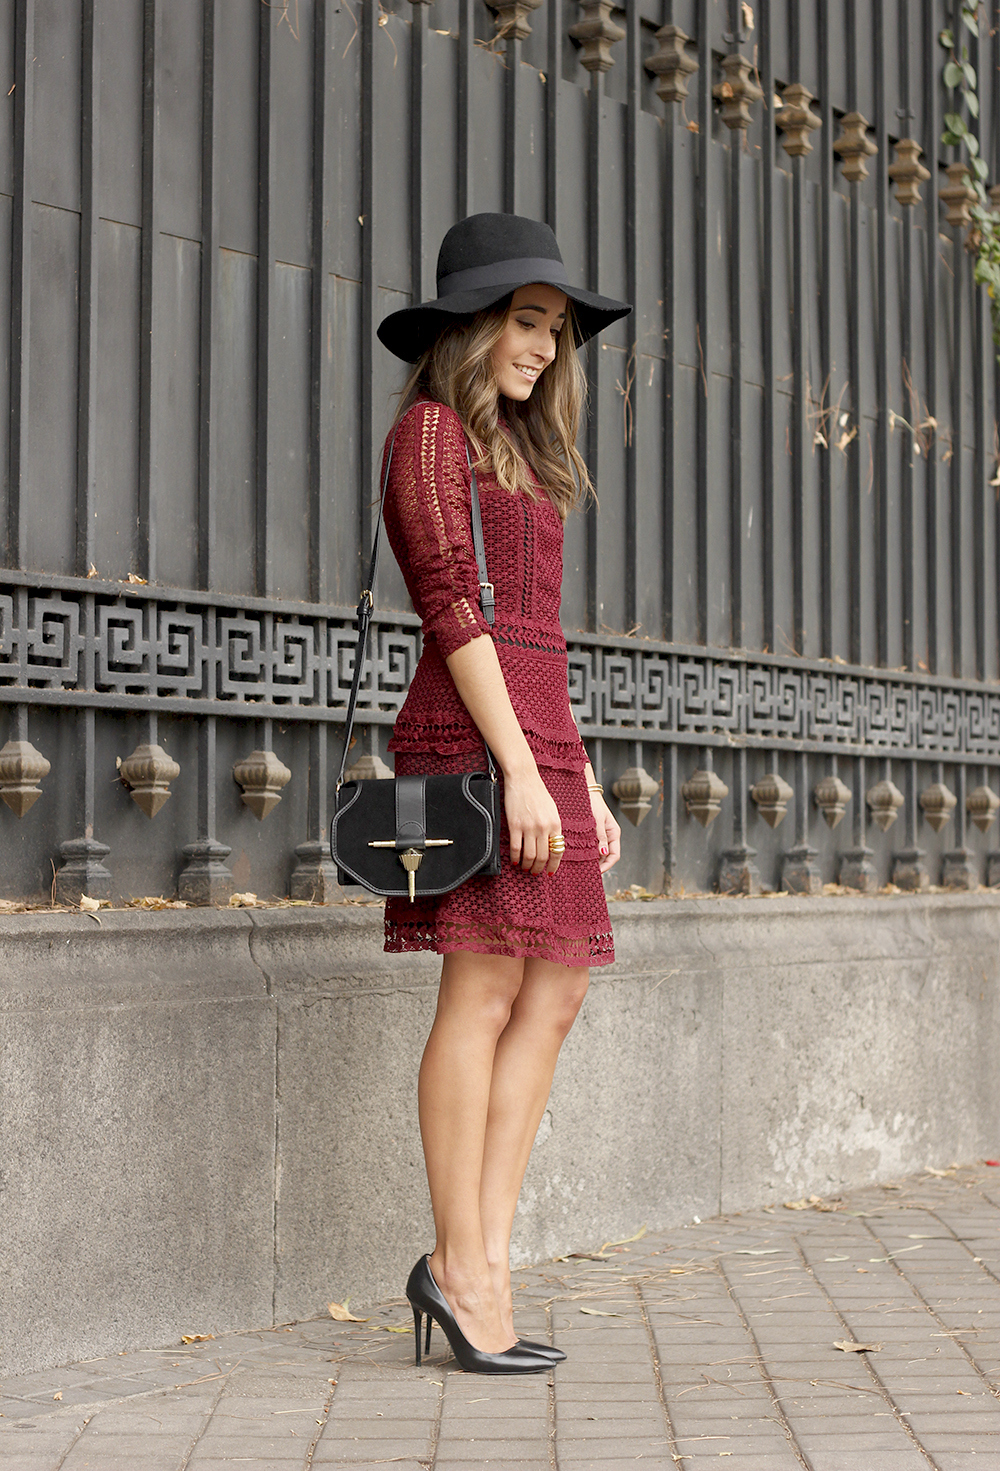 burgundy lace dress black heels hat accessories outfit fashion style09